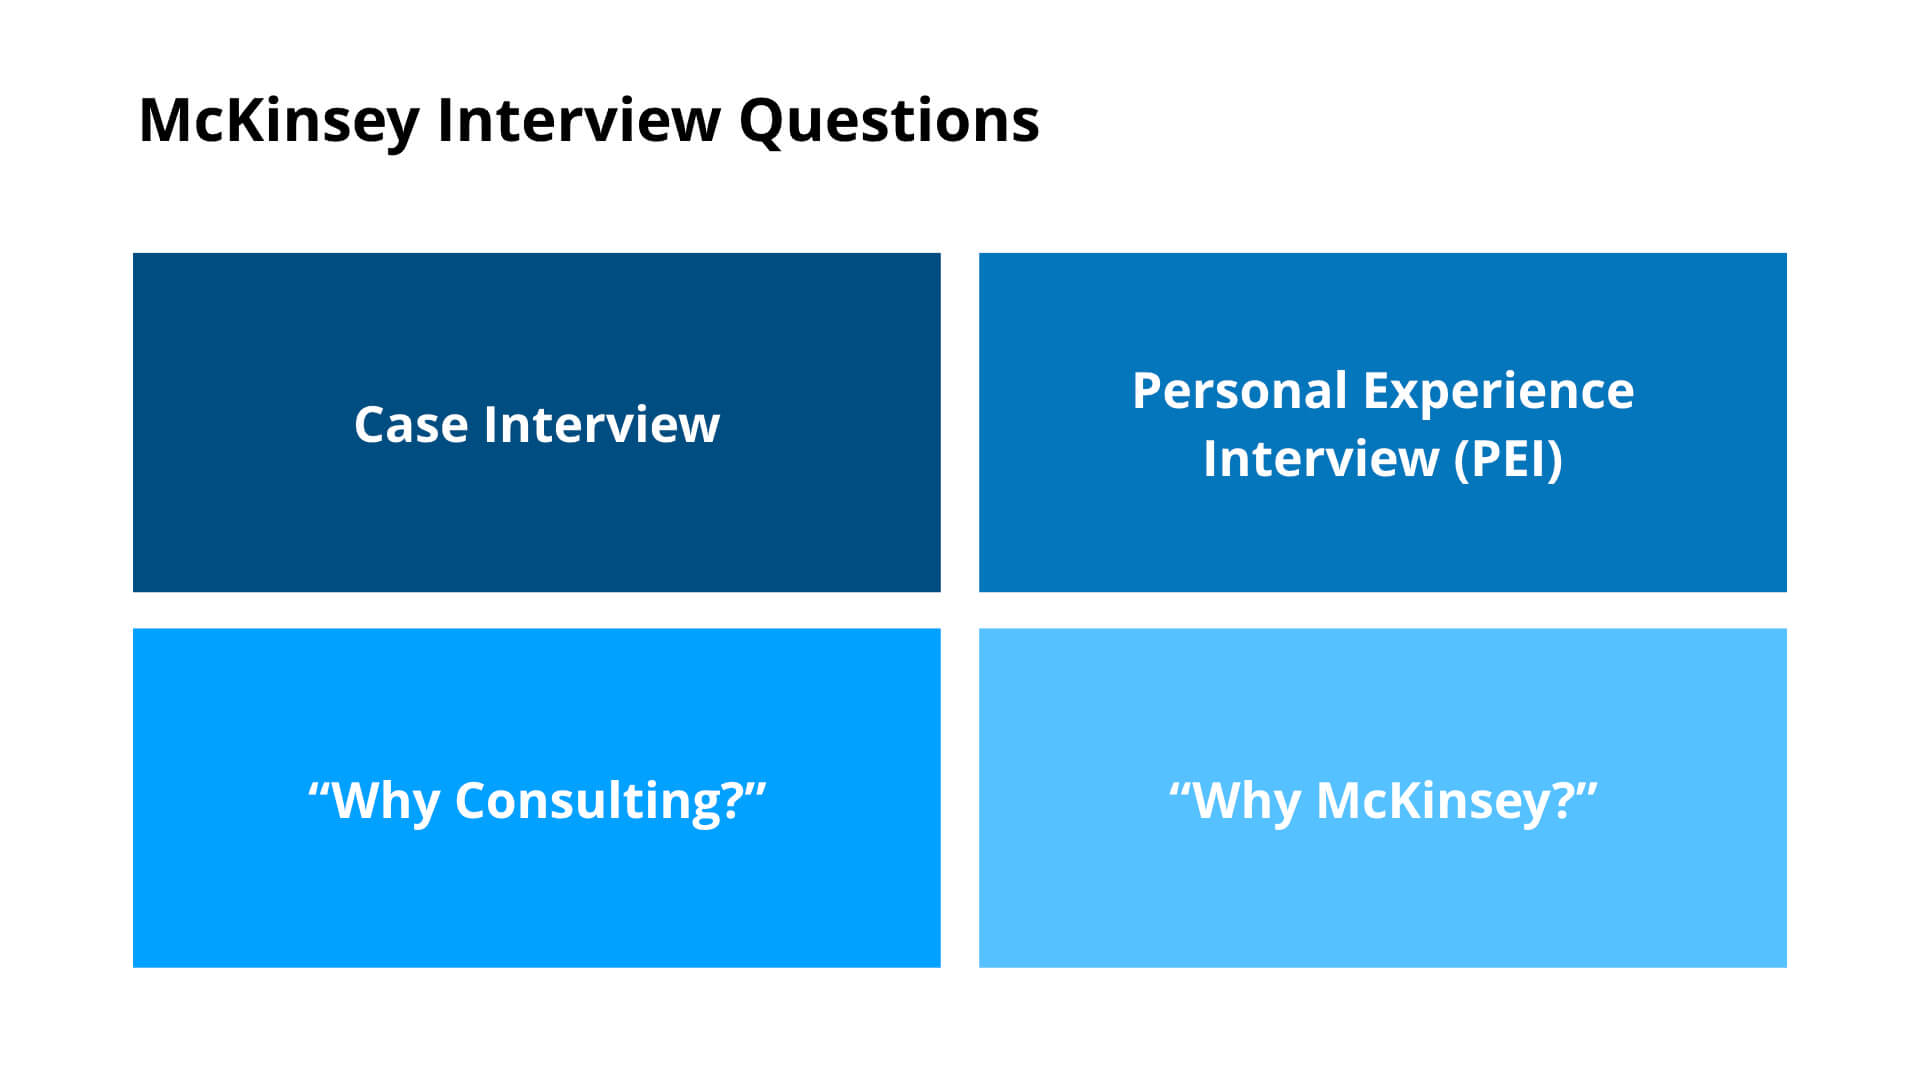 McKinsey Interview Questions